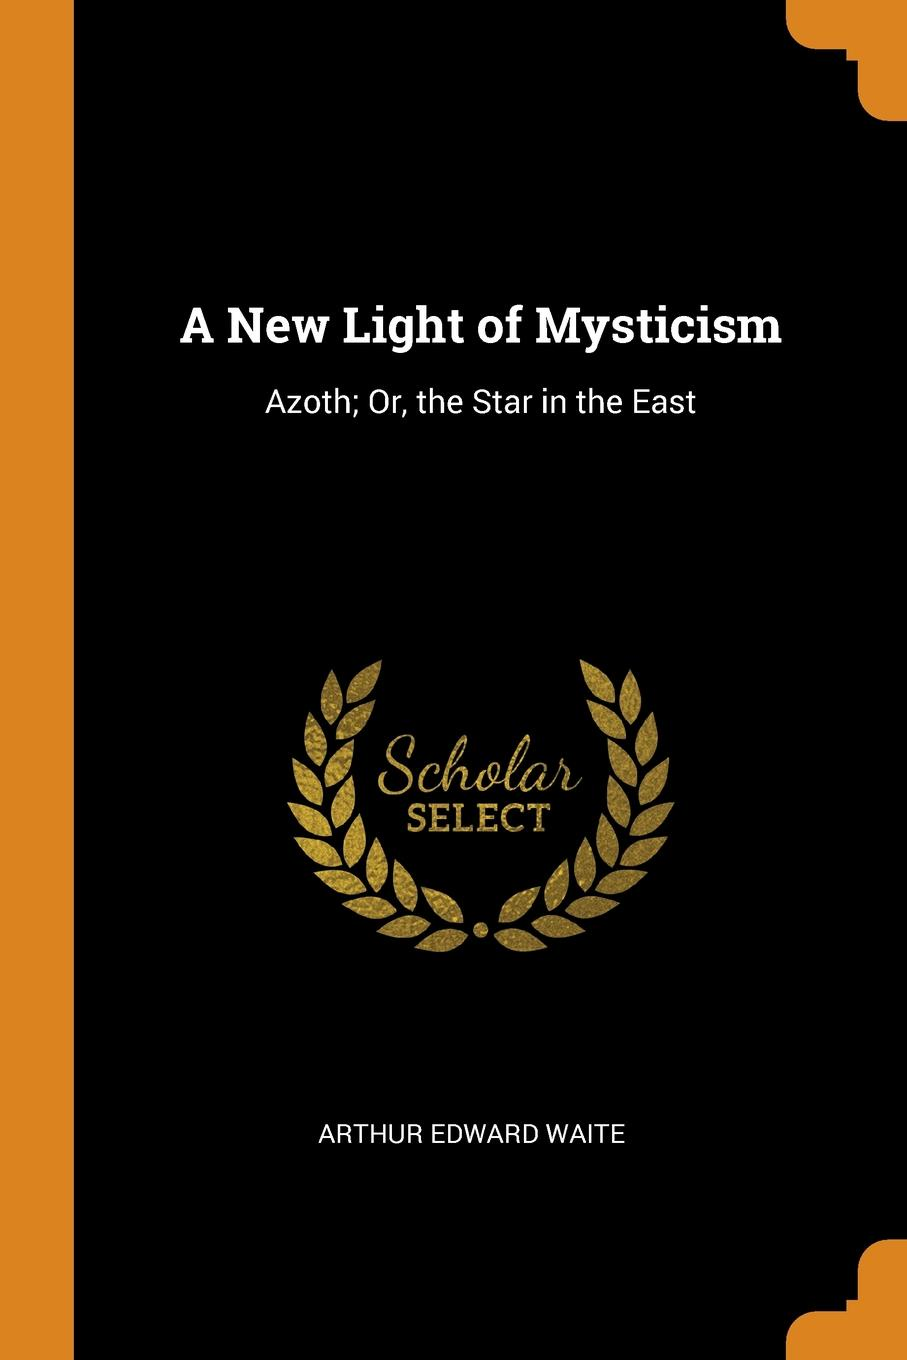 Arthur Edward Waite. A New Light of Mysticism. Azoth; Or, the Star in the East